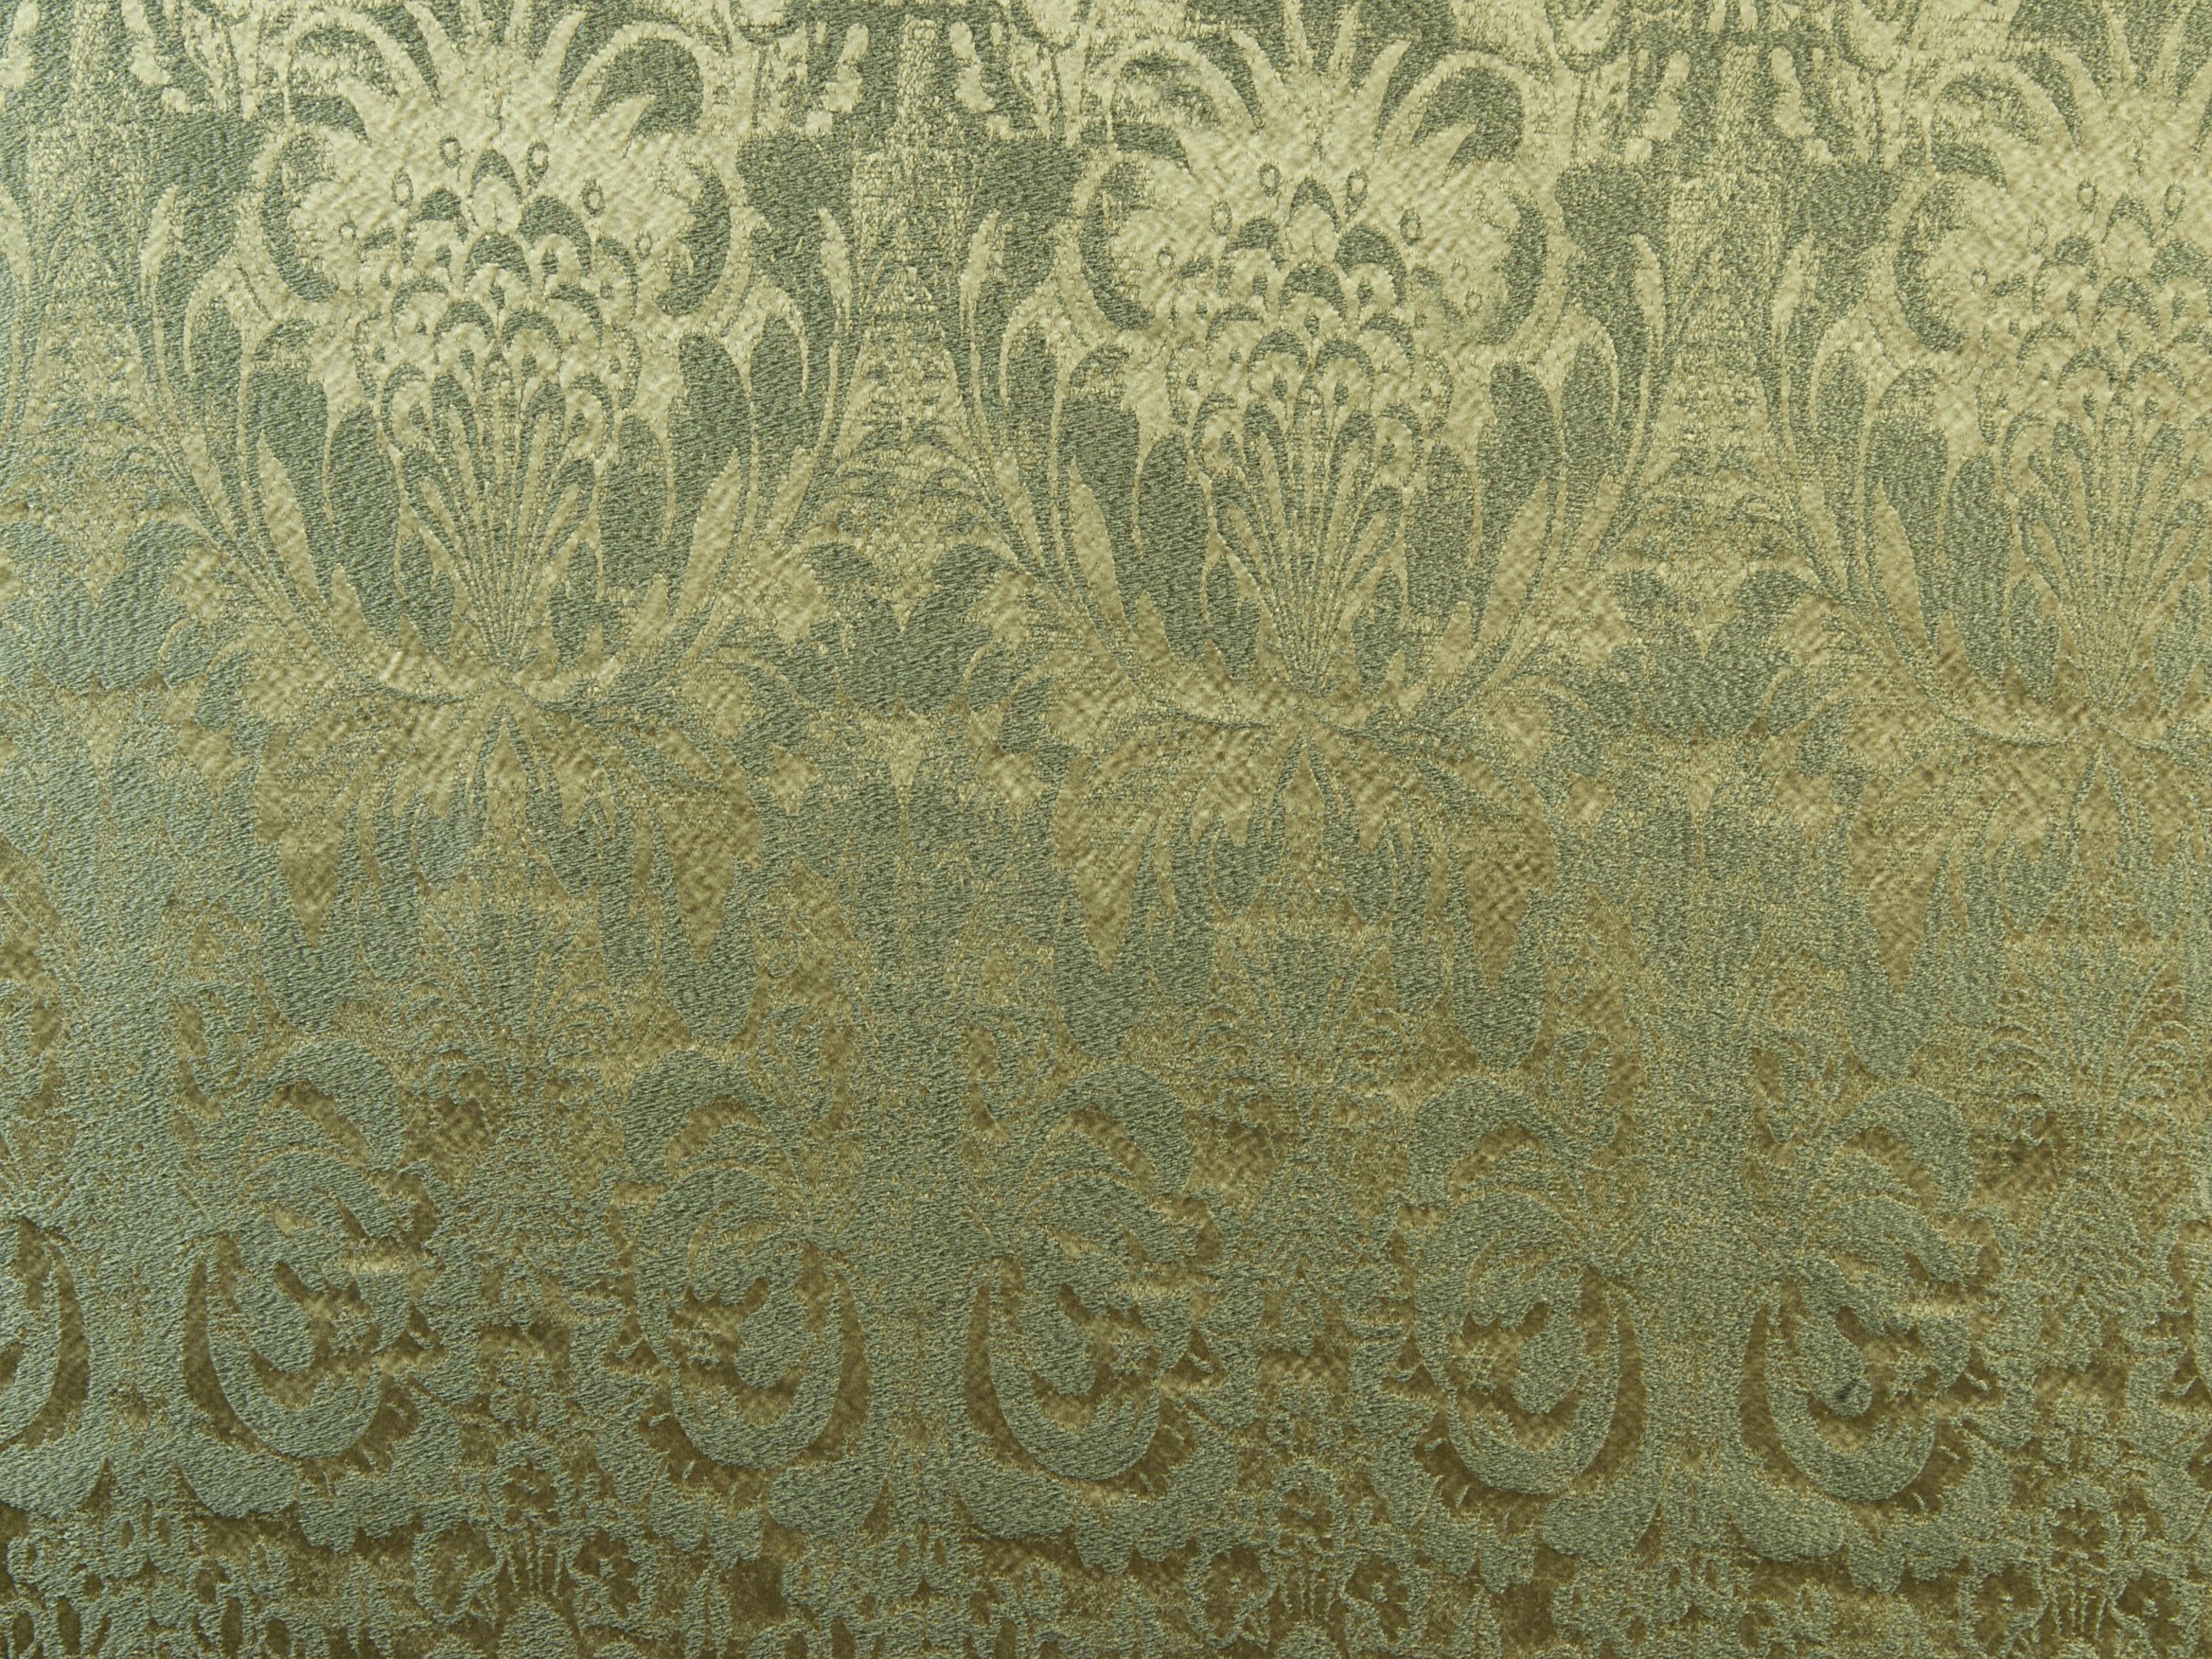 Damask upholstery fabric historian by aldeco interior fabrics for Textile fabrics